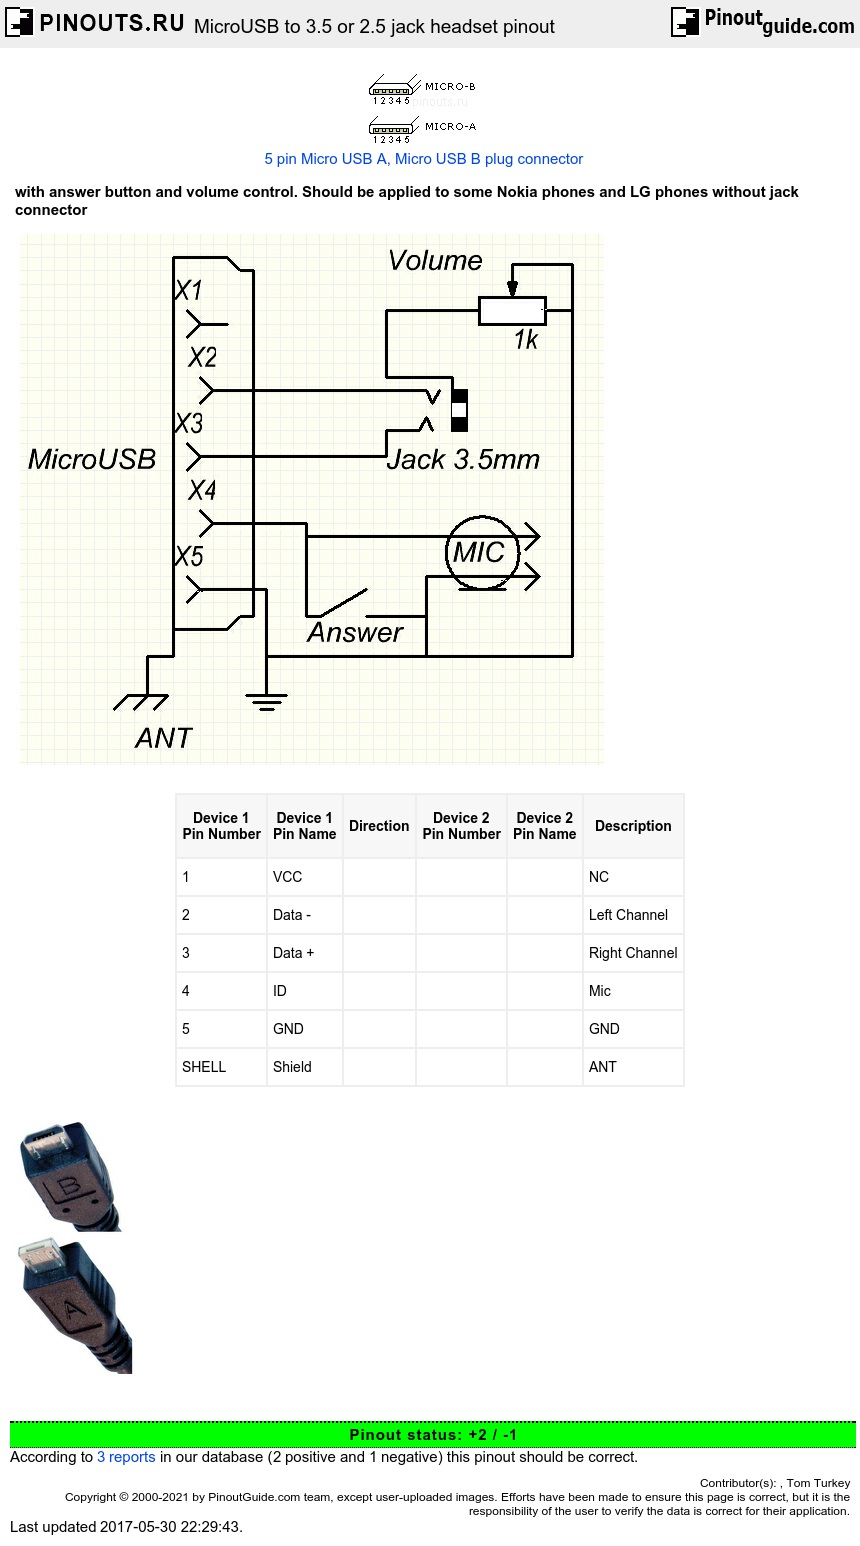 Ford 601 workmaster wiring diagram on ford images free download on ford 601 workmaster wiring diagram 8n ford tractor wiring diagram 6 volt 1953 ford jubilee wiring diagram